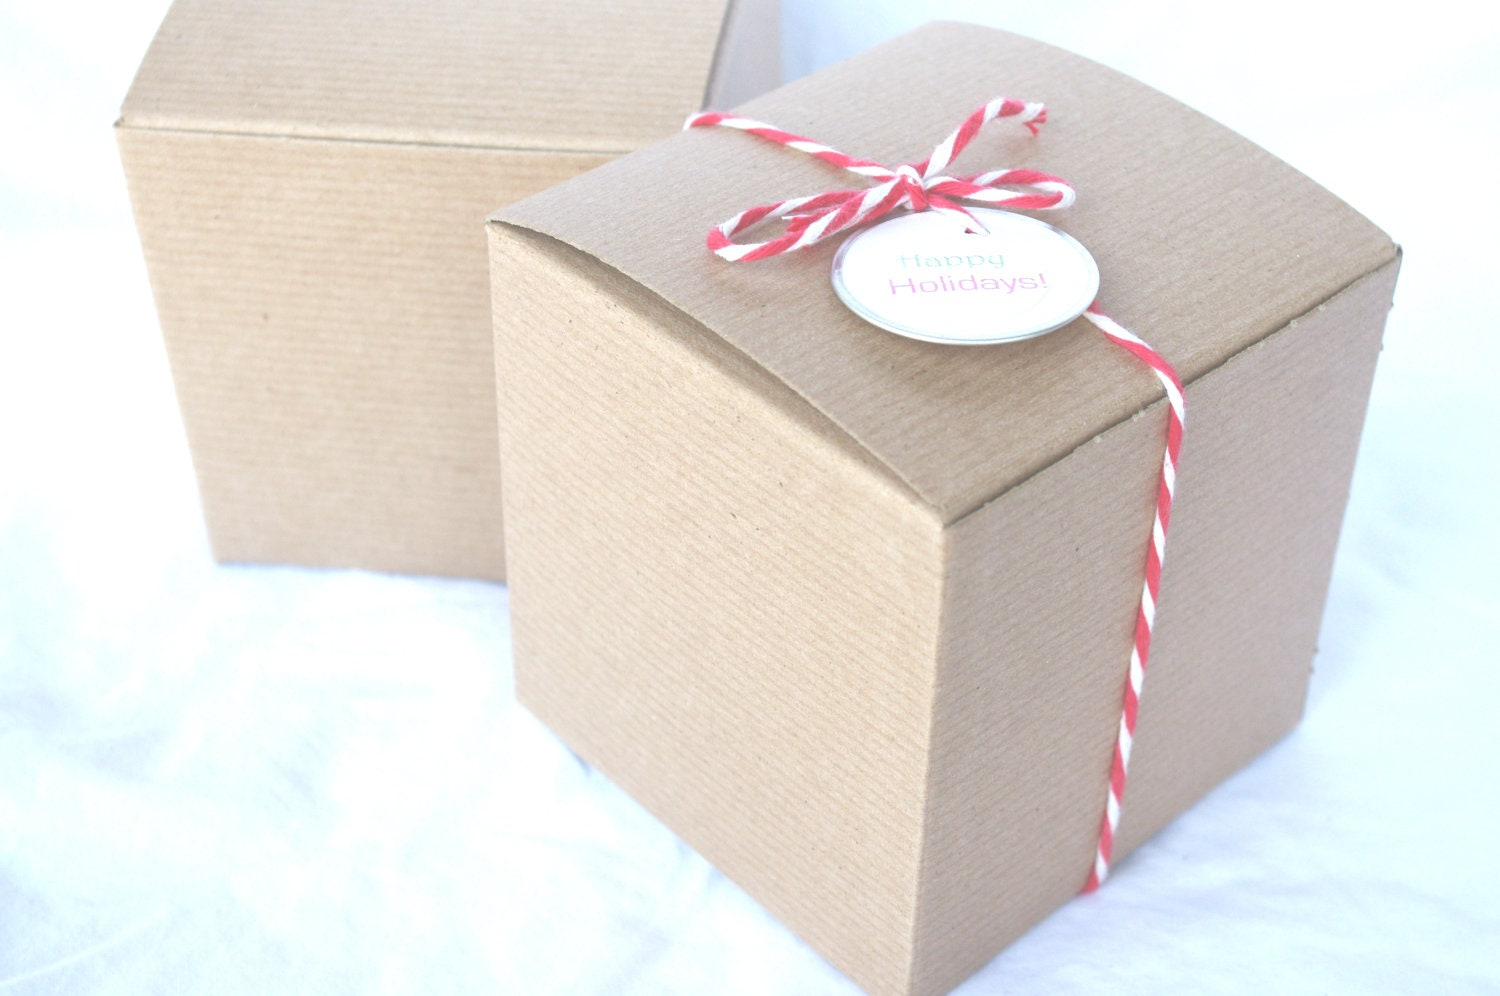 BRoWN KRaFT GiFT BoXeS-4x4x4-DIY Crafts,party favors, weddings ...